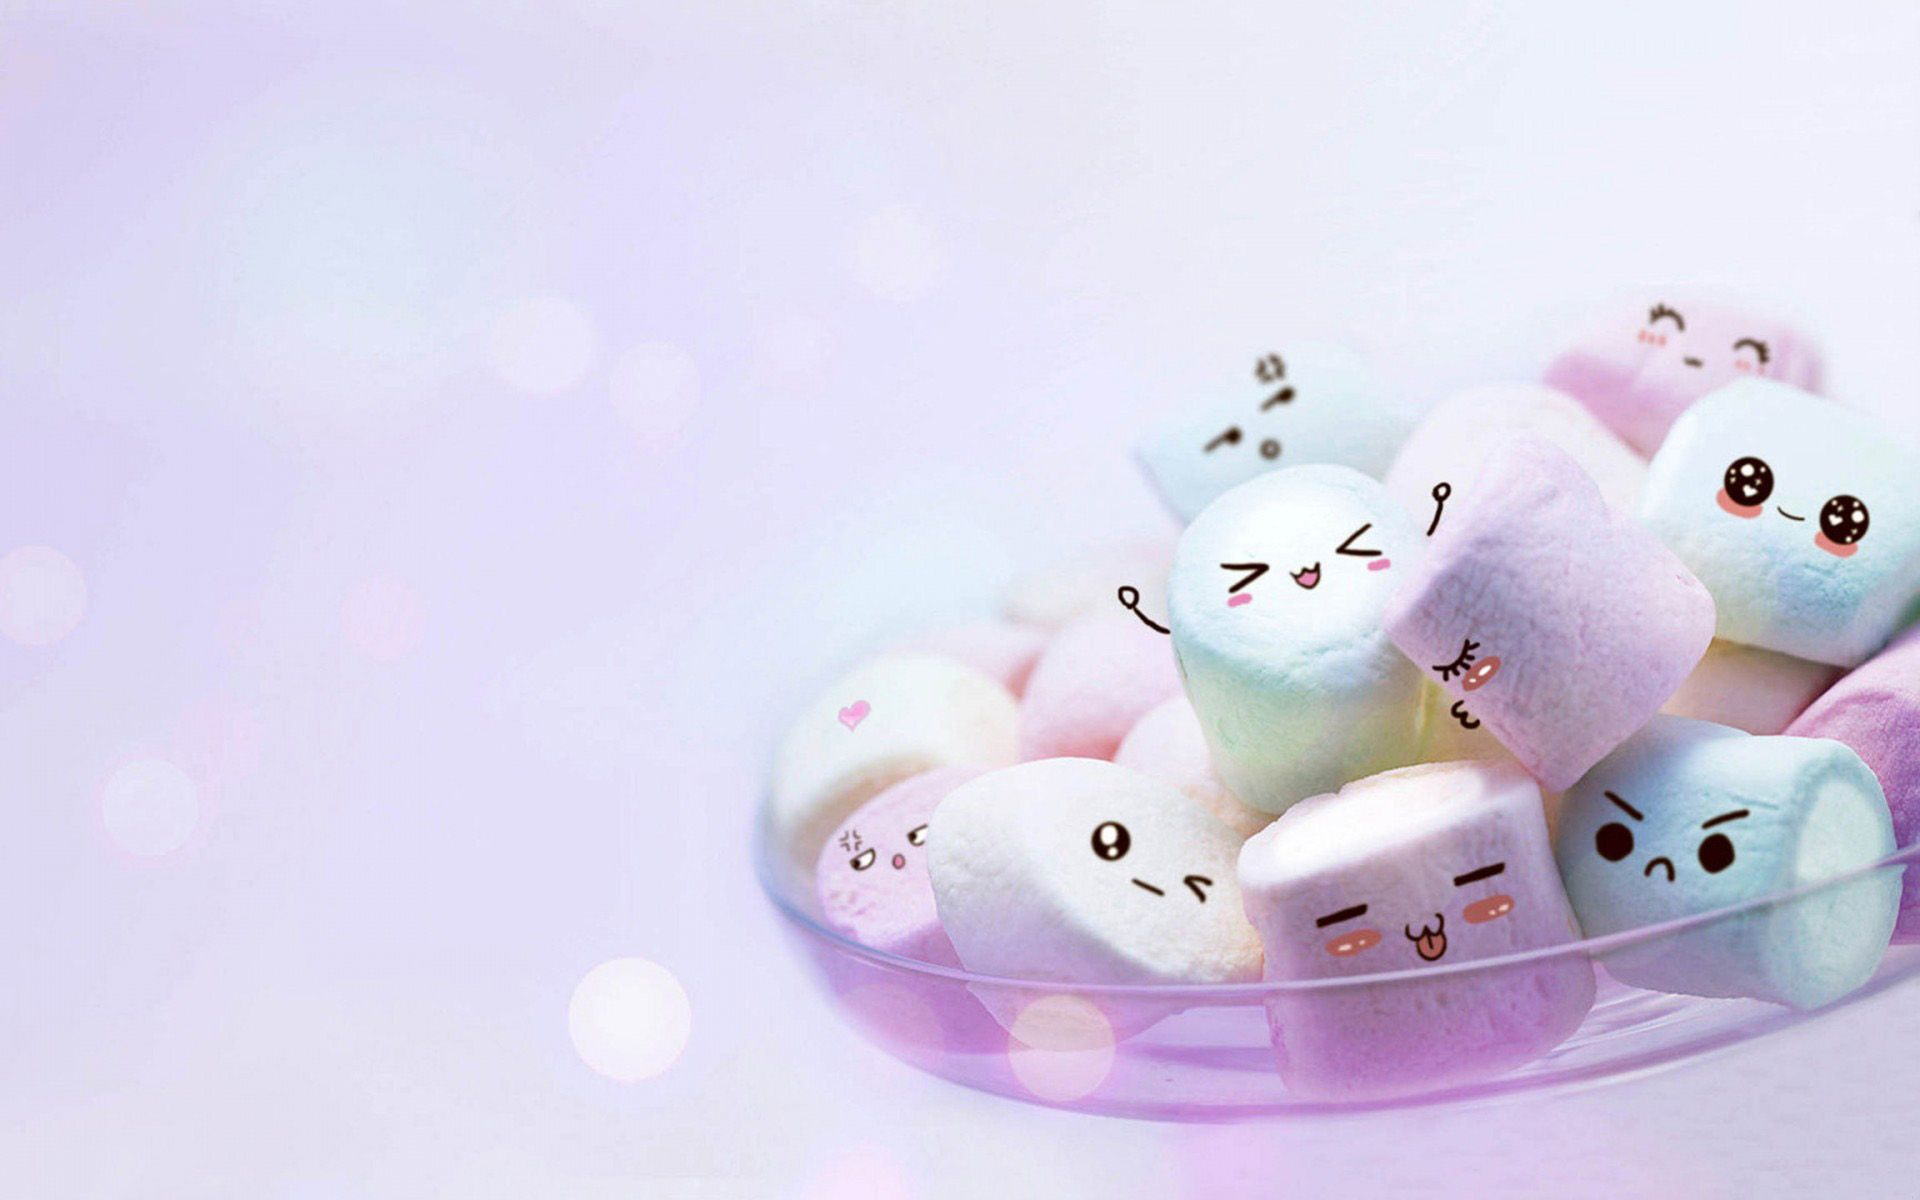 1920x1200 undefined Marshmallow Wallpaper (19 Wallpapers) | Adorable ...